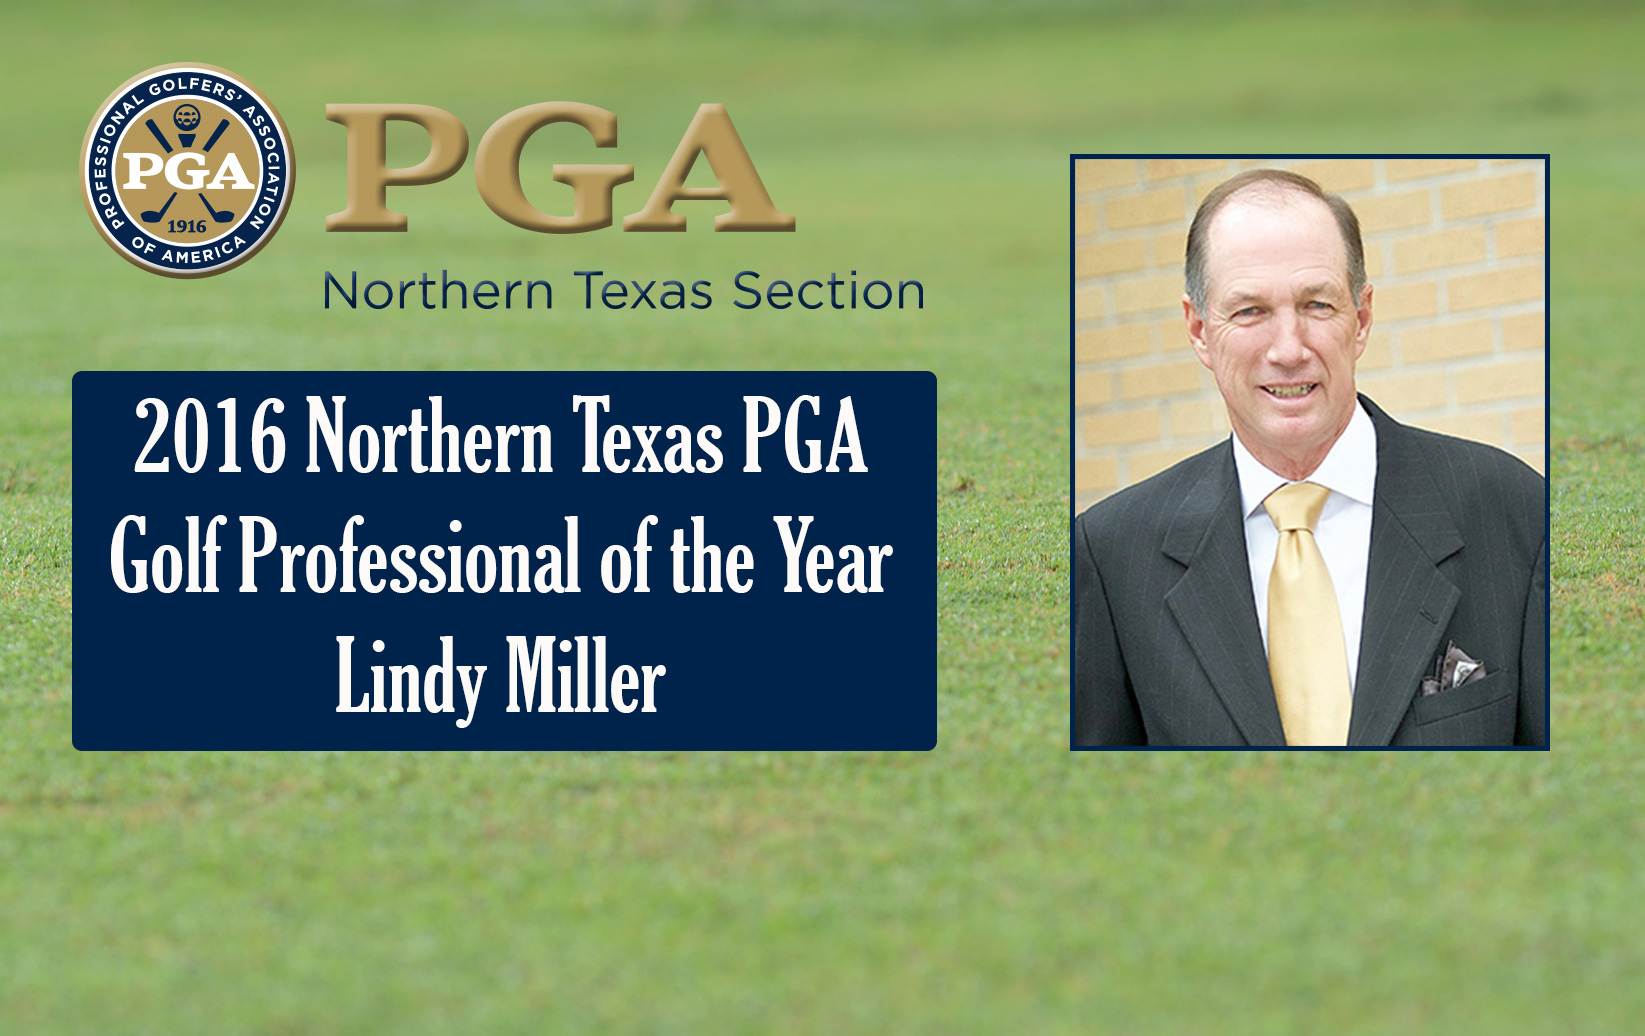 2016 Northern Texas PGA Section Award Winners Announced